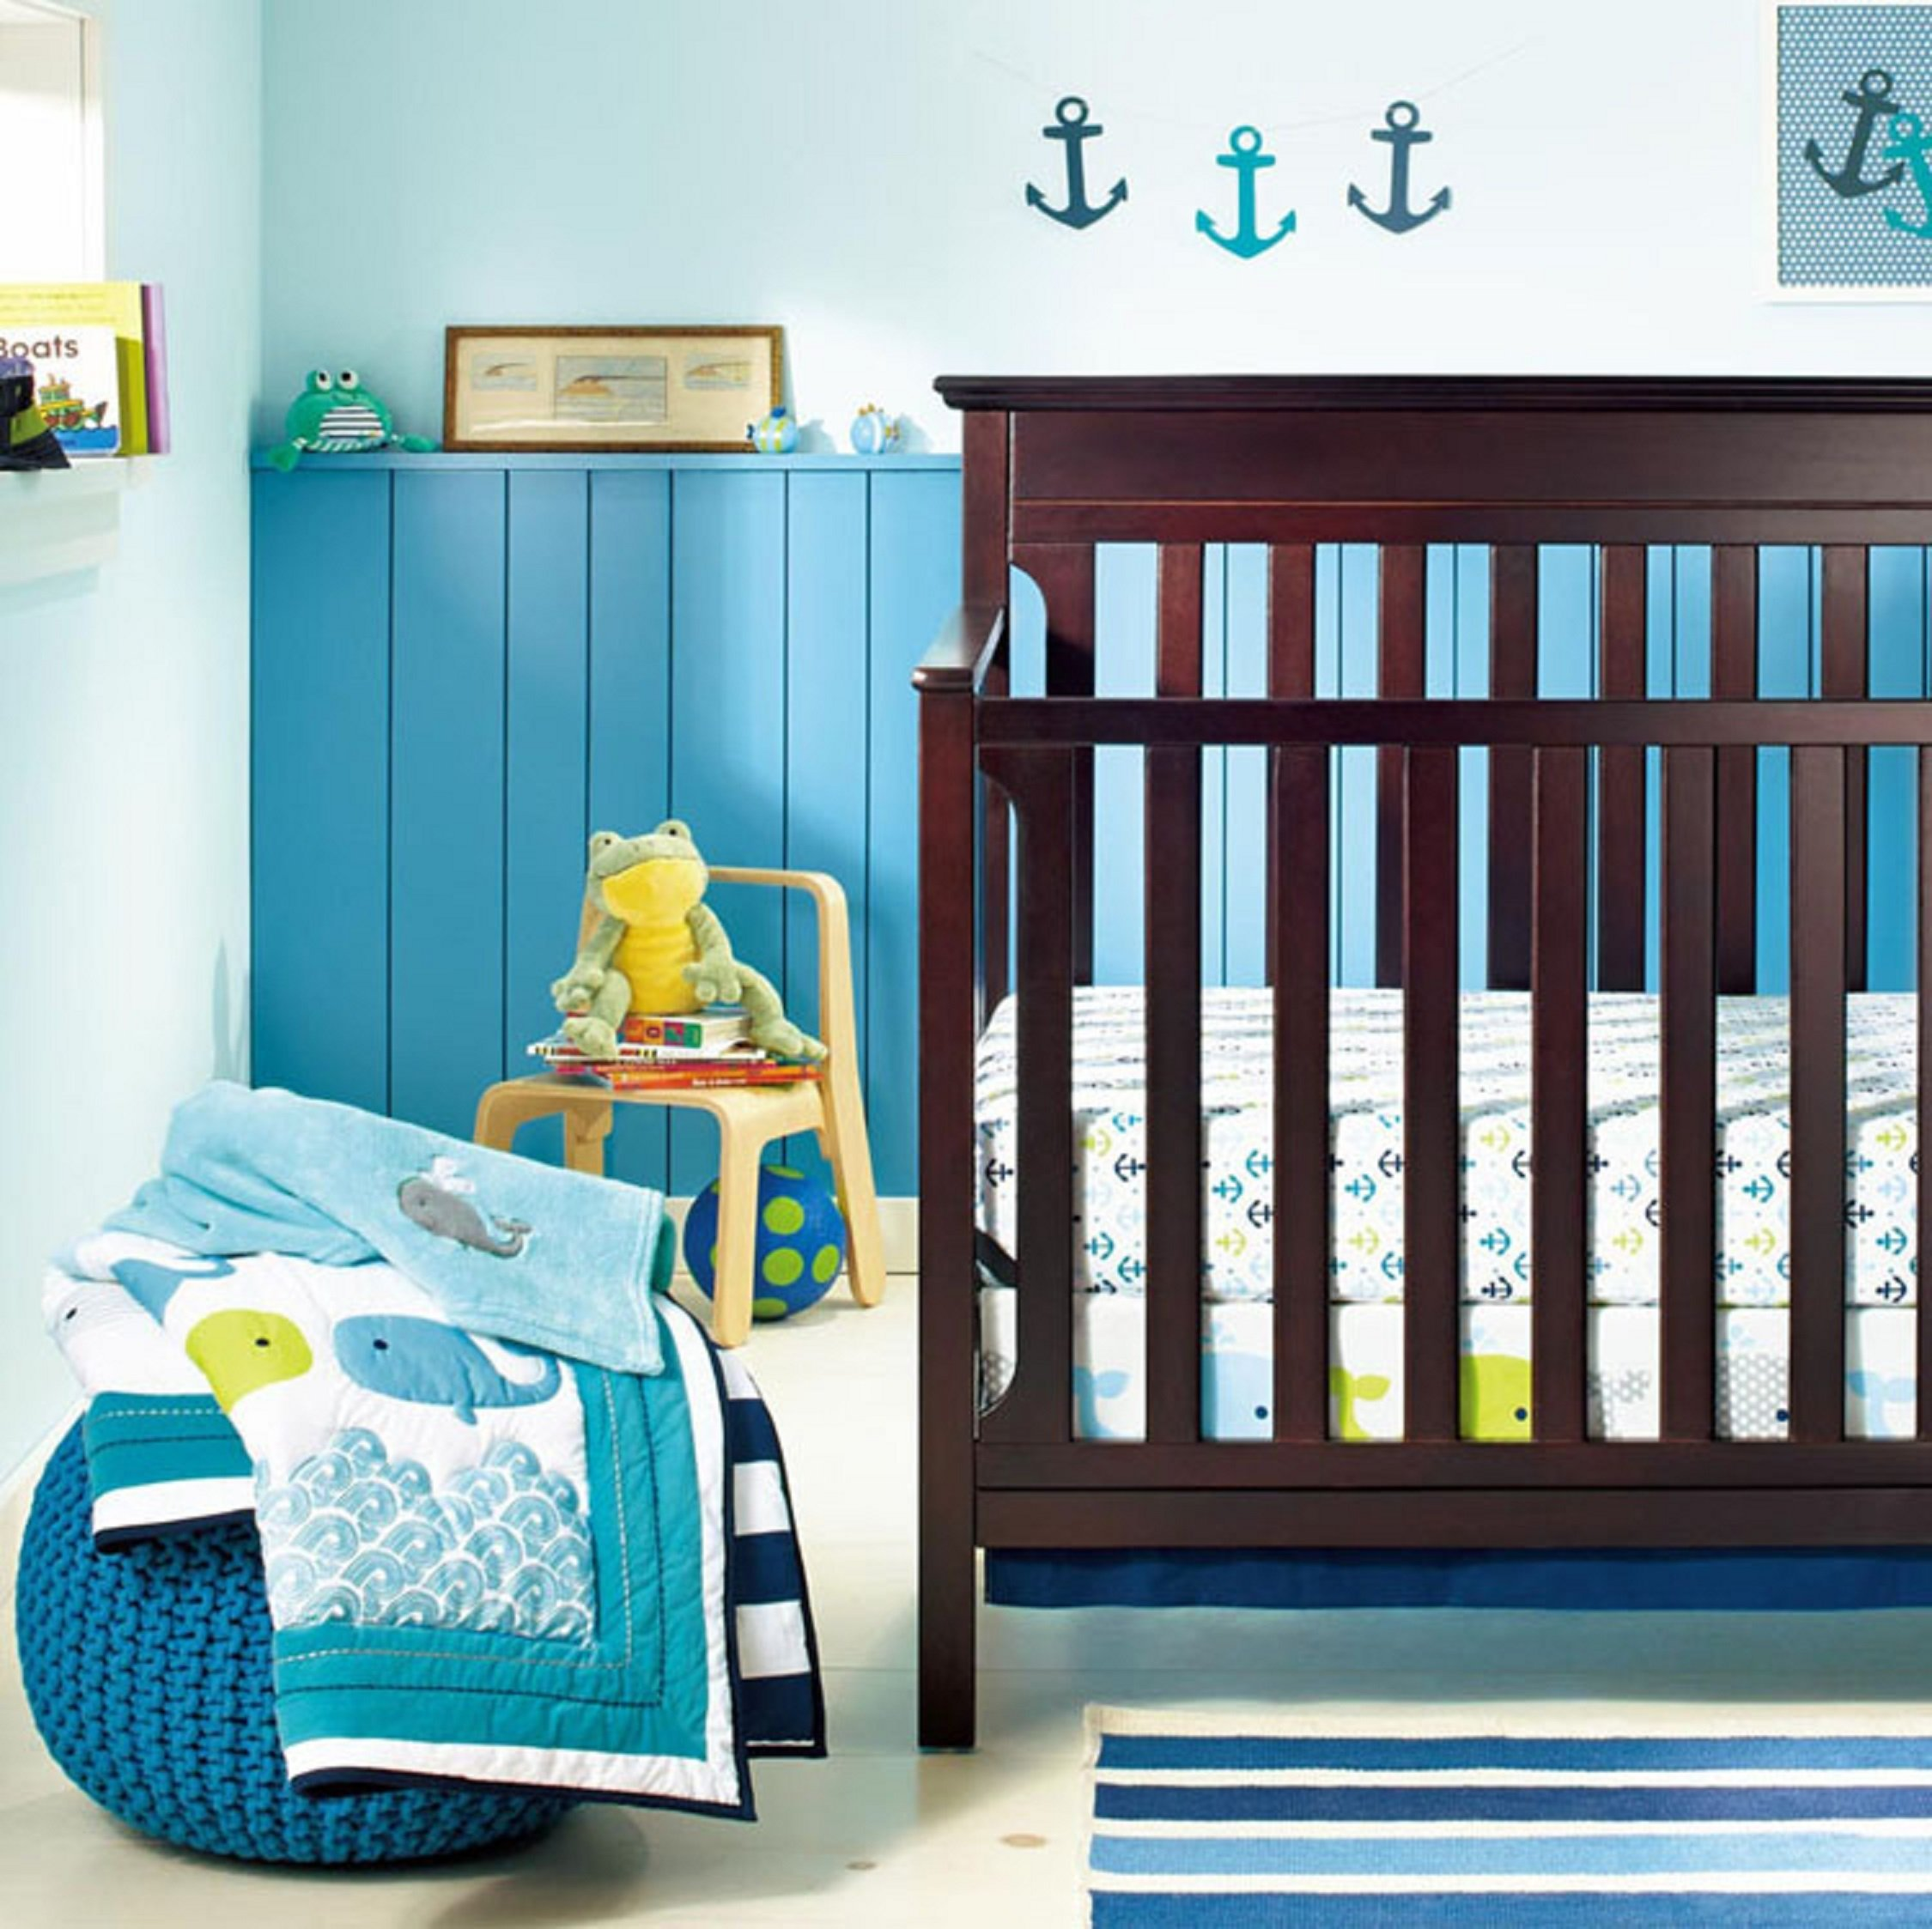 New Baby Boy Neutral Animal Ocean Whale 8pcs Crib Bedding Set with Bumper product image